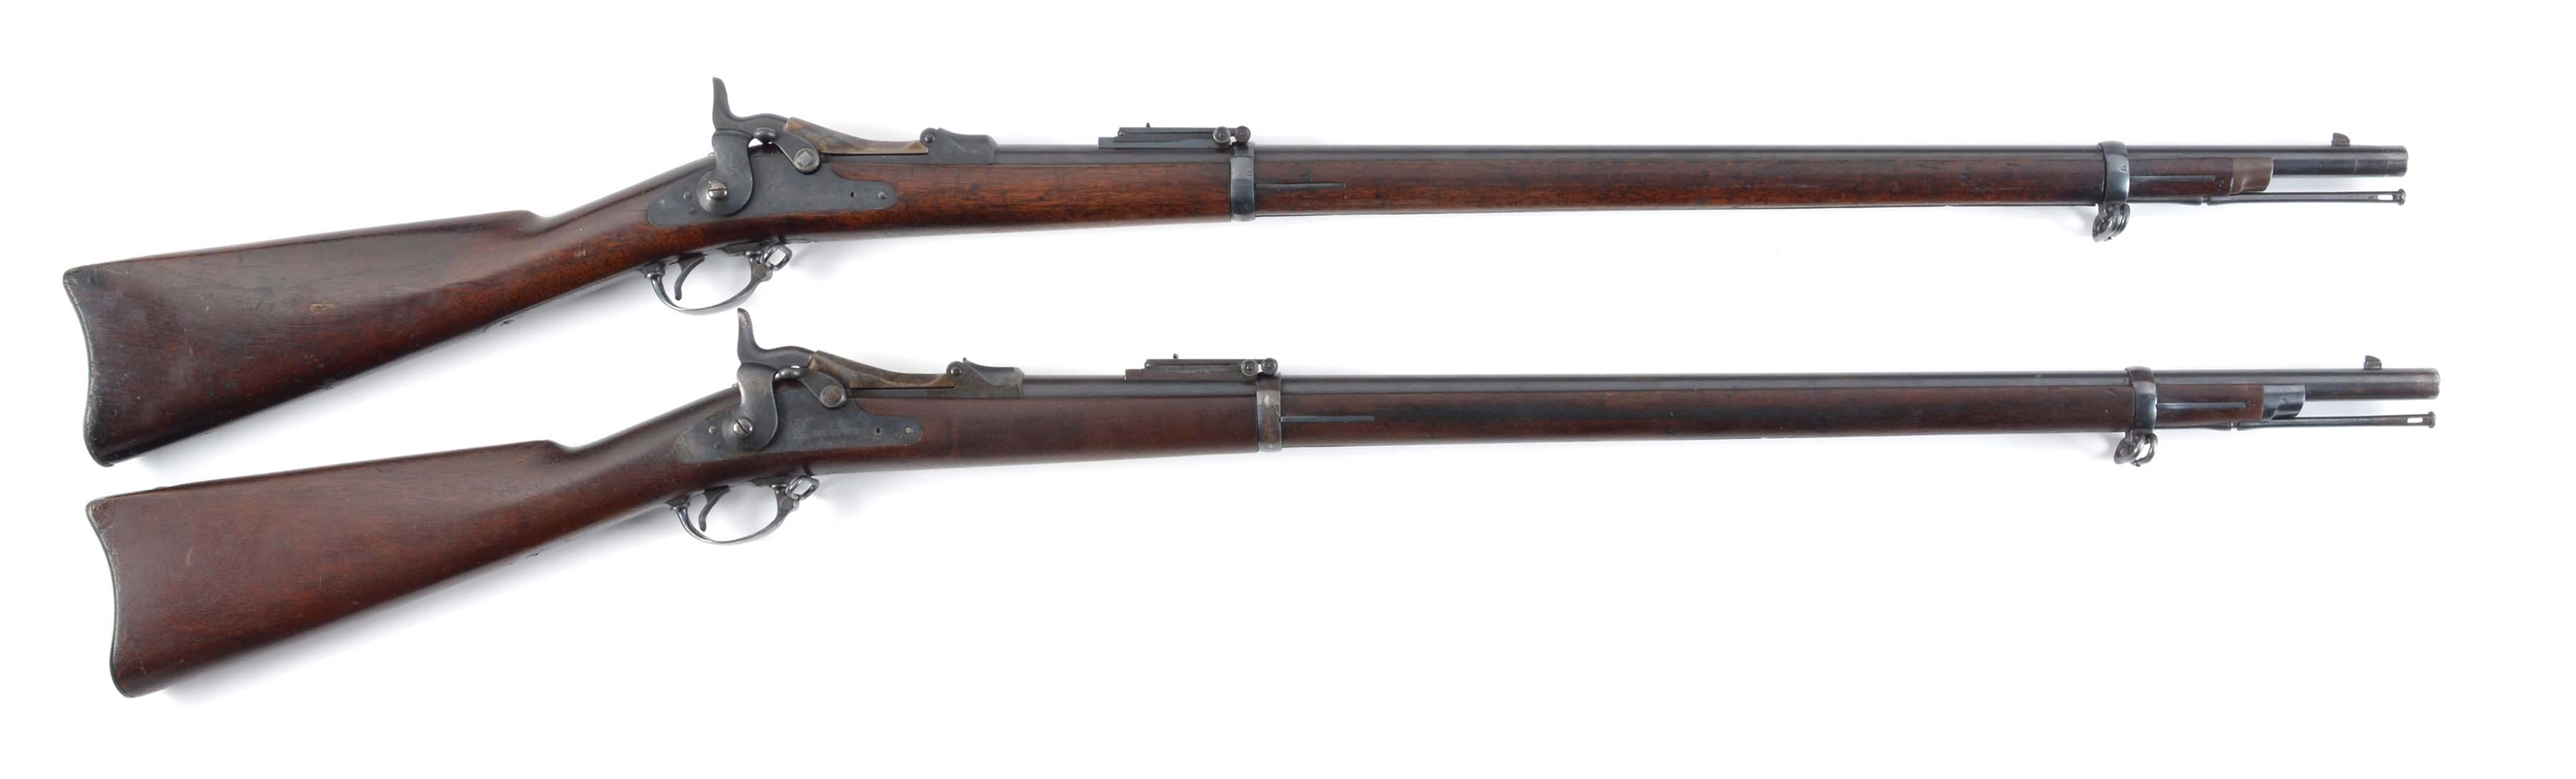 (A) PAIR OF SPRINGFIELD 1884 TRAPDOOR RIFLES IN .45-70.